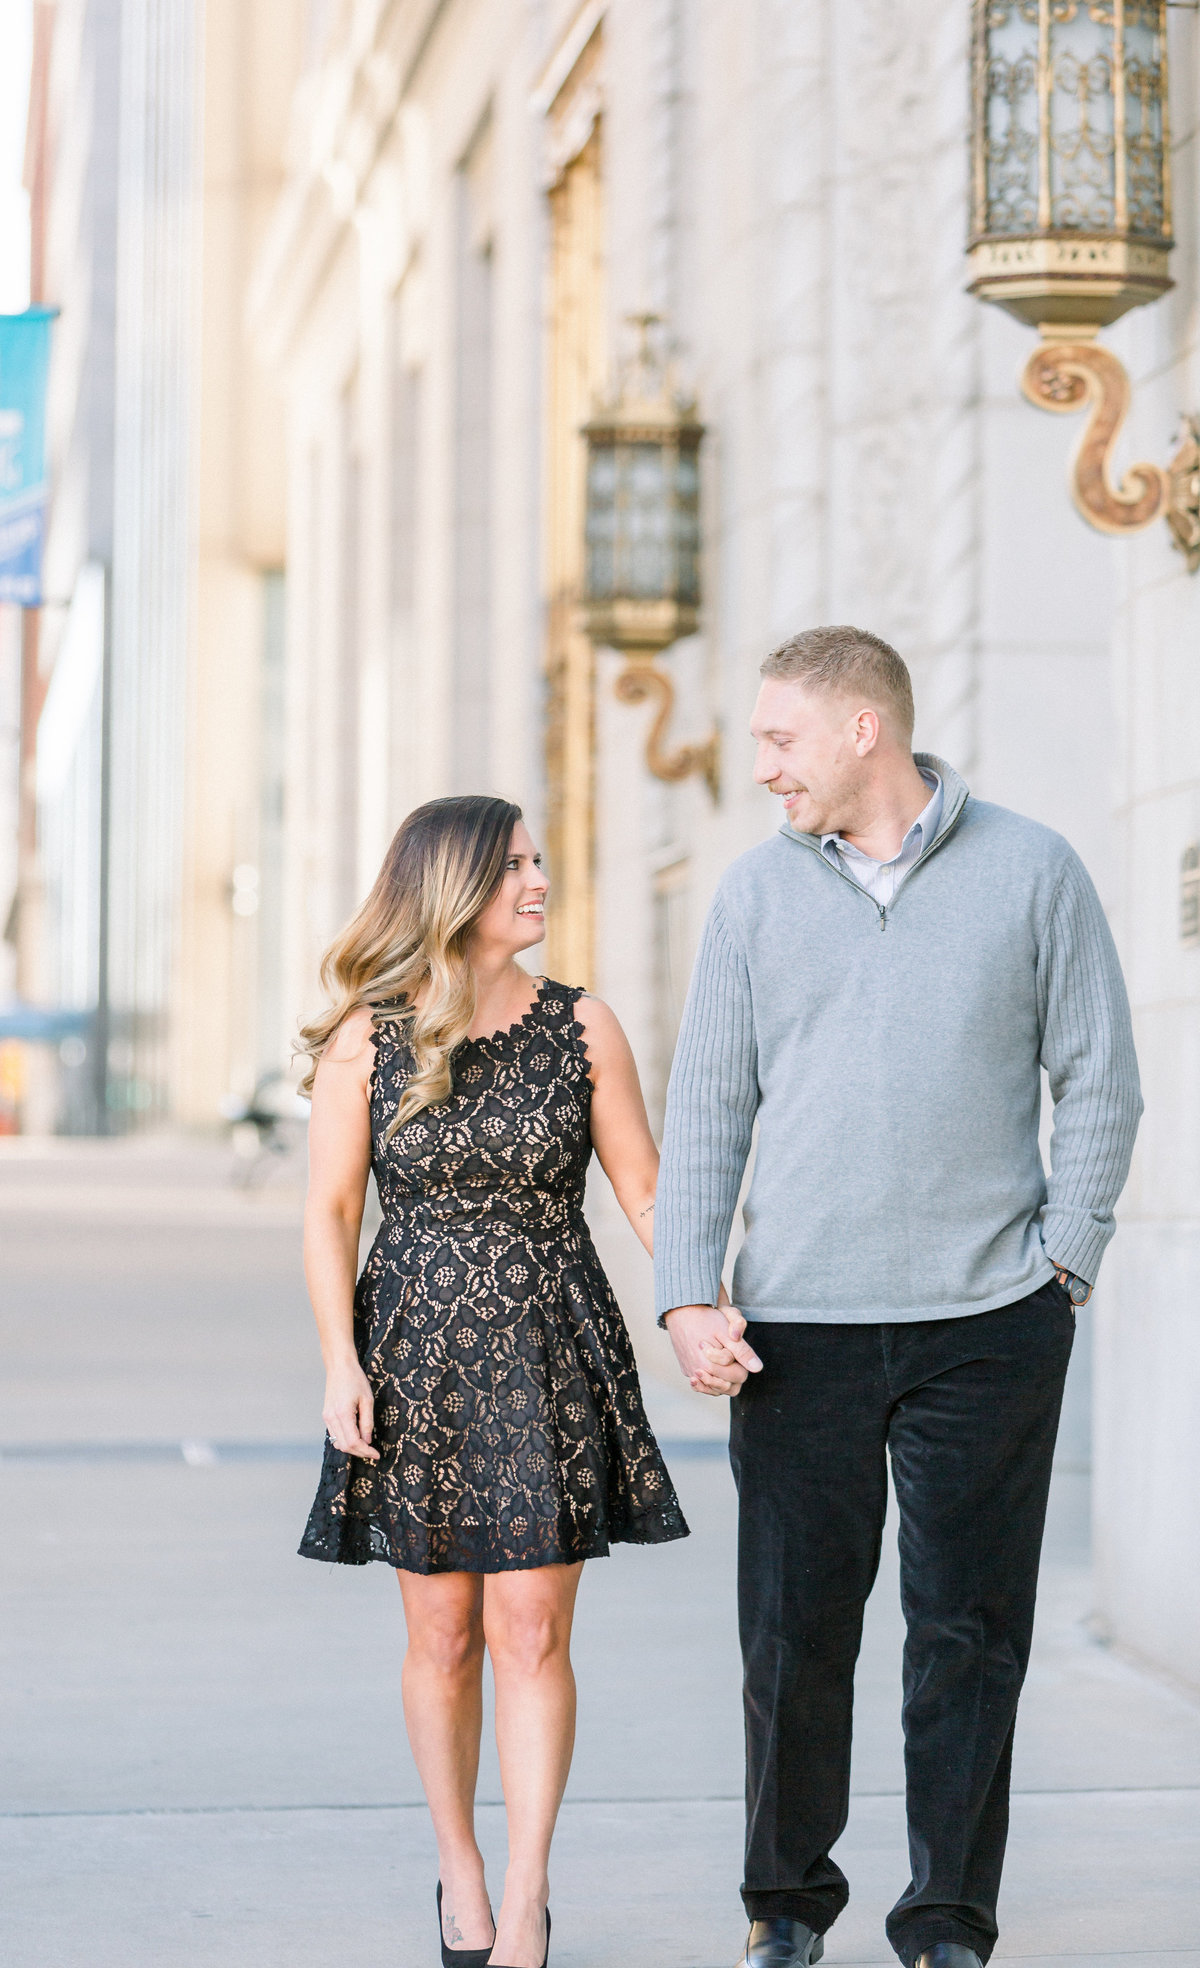 Galleries-Nathan and Jaime Engagement Session-0006